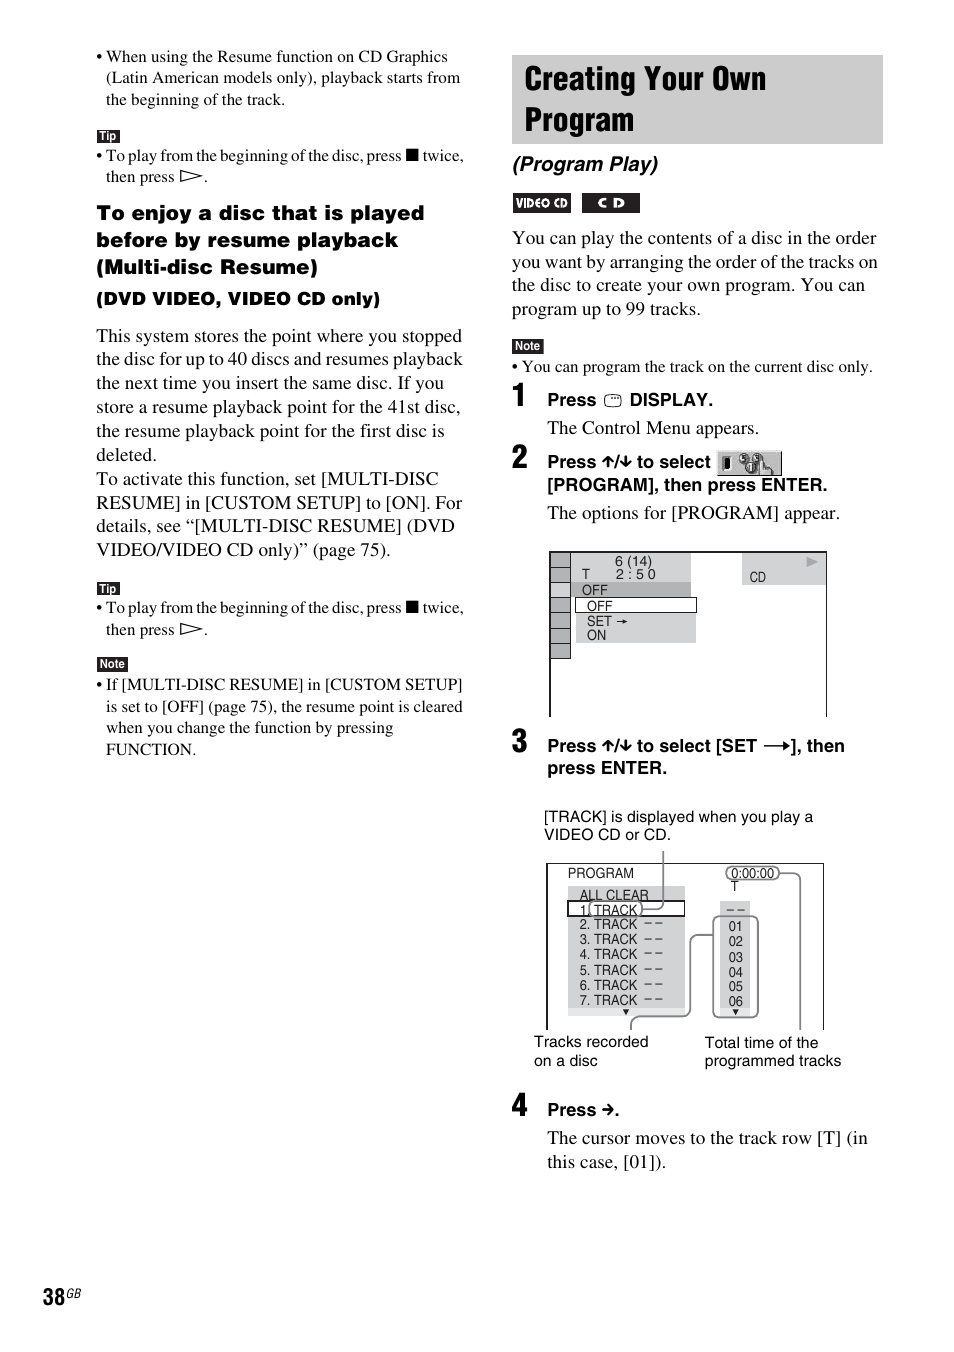 Creating your own program, Program play) | Sony DX315 User Manual